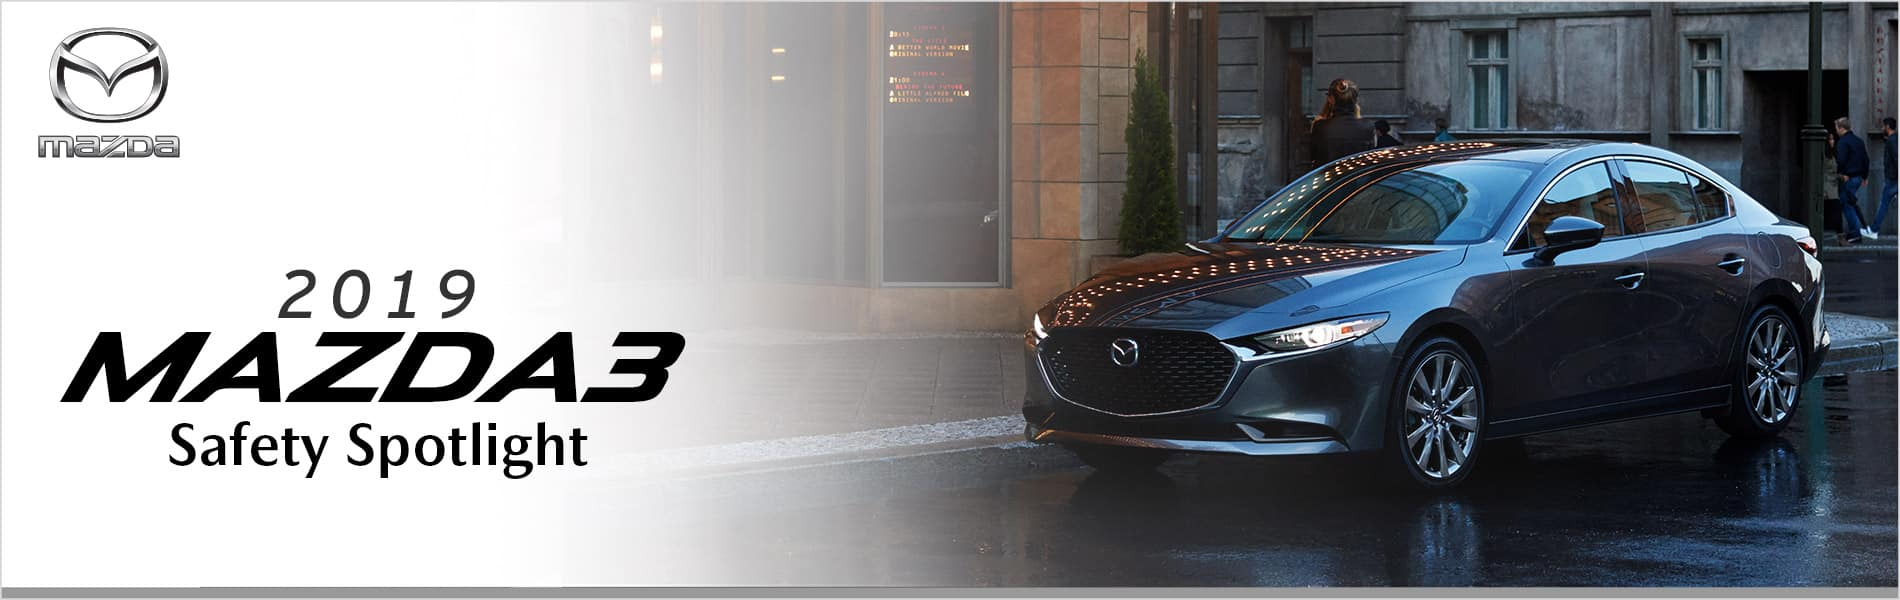 The 2019 Mazda3 is loaded with safety features, check them out at Mazda of Bedford